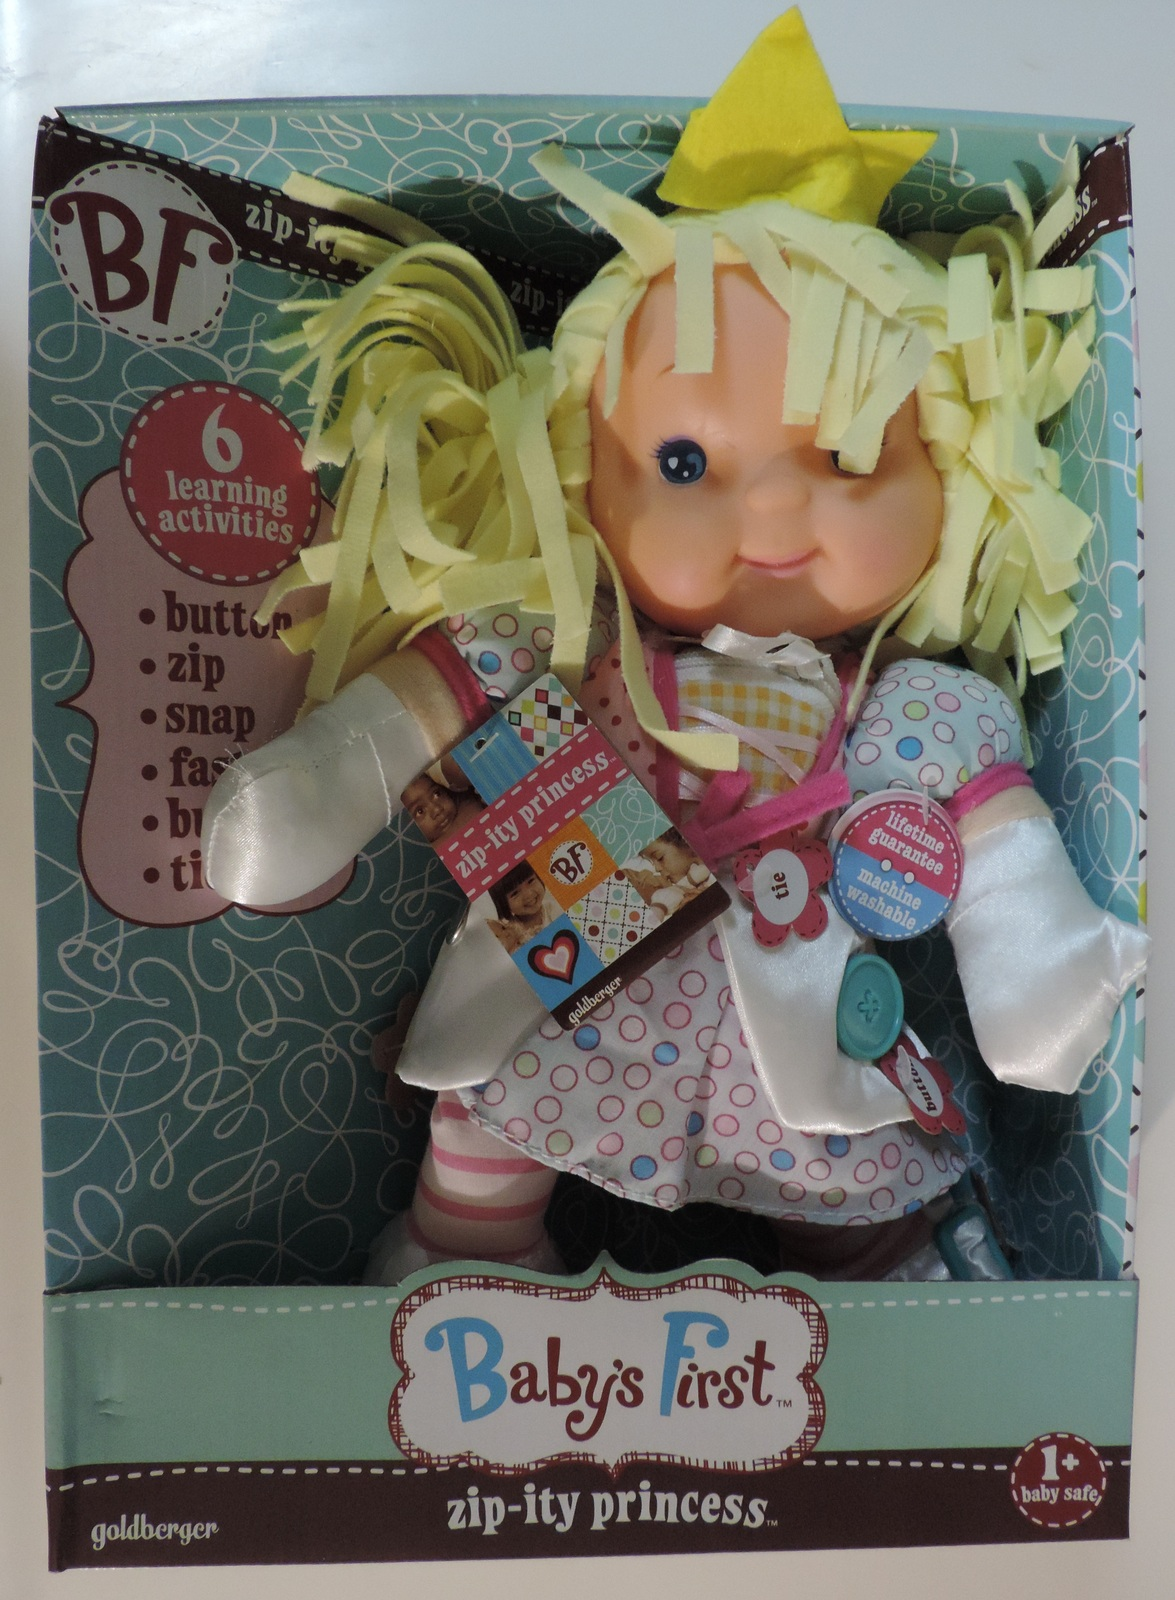 Baby's First Zip-Ity Princess learning activities doll - New